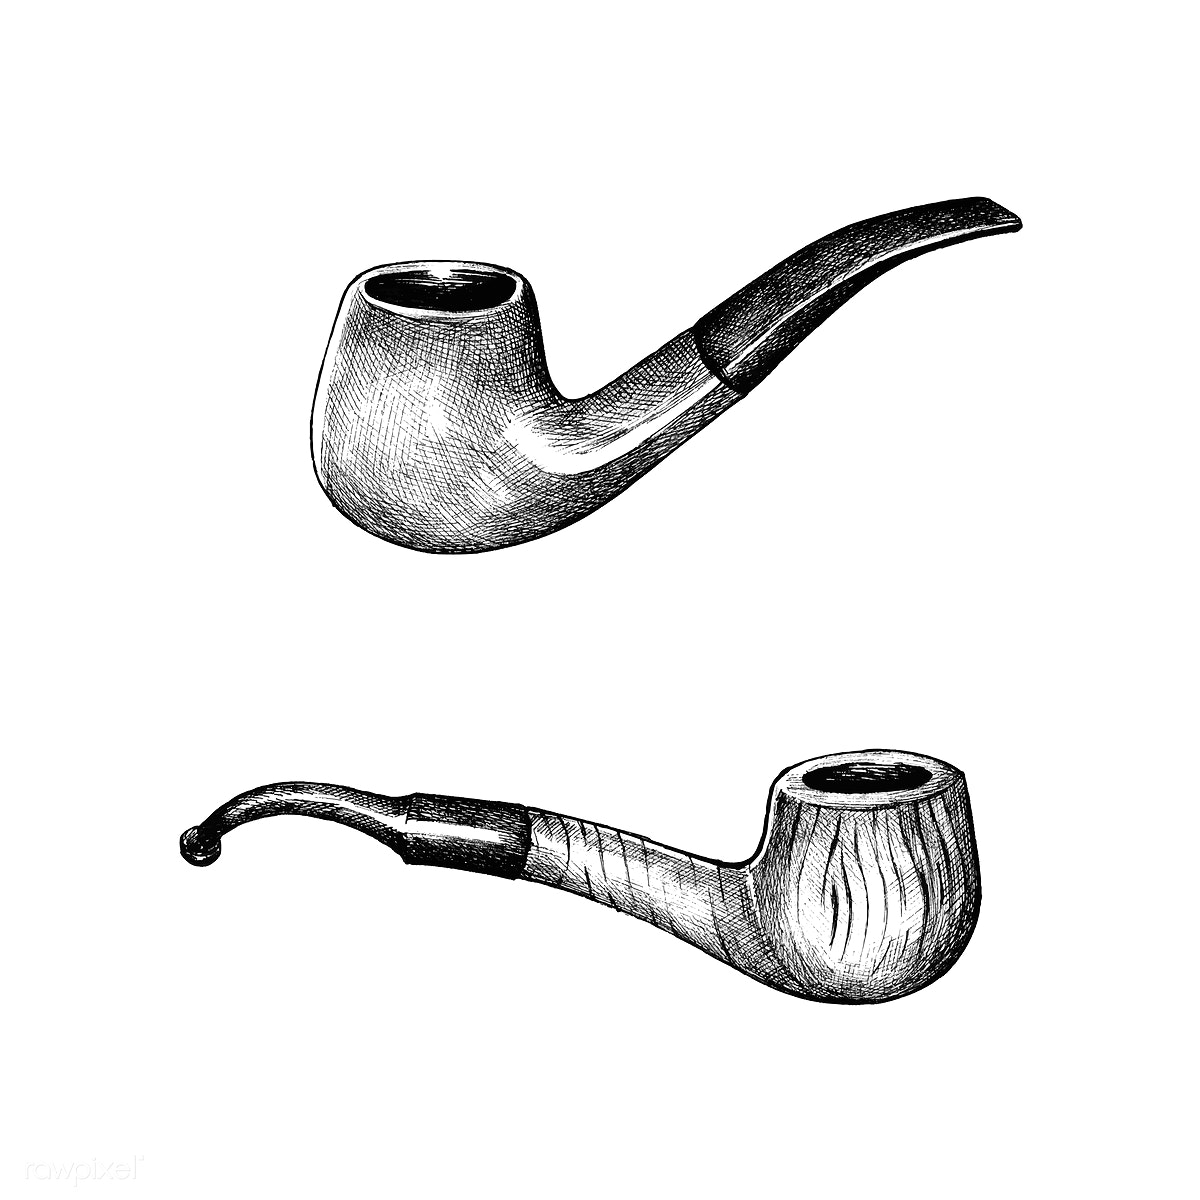 Download premium illustration of Hand drawn wooden tobacco pipe 410923